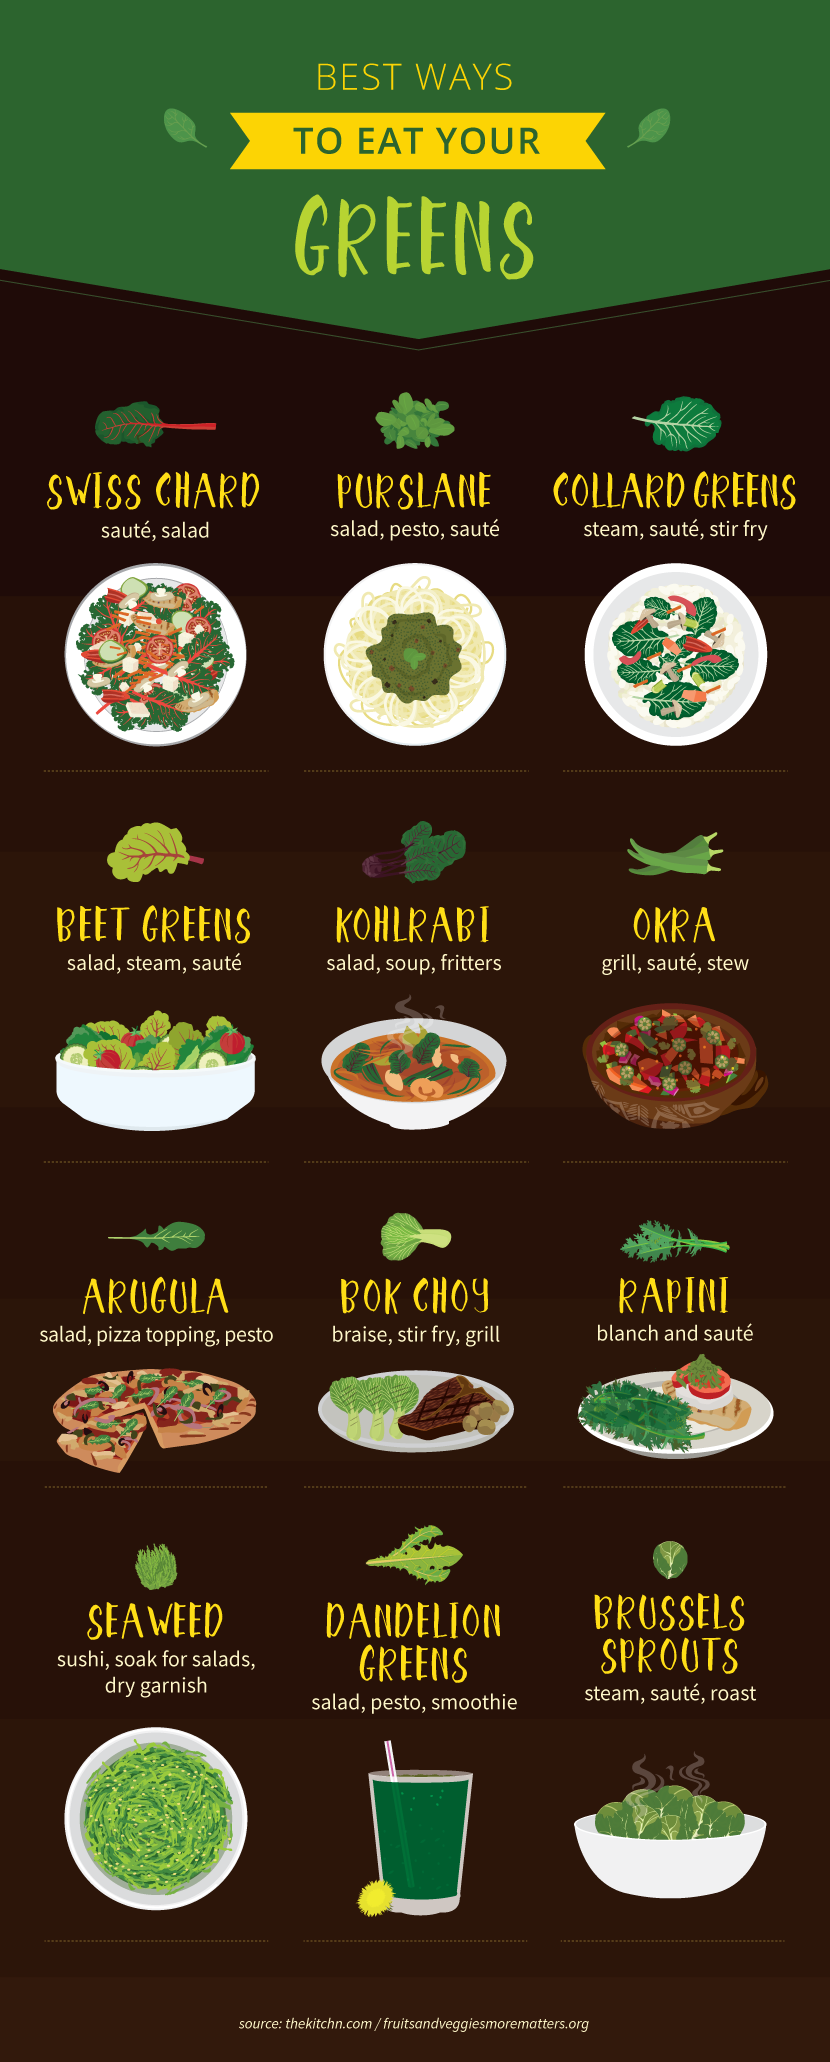 Best Way to Eat Your Greens - Try These Superfood Greens